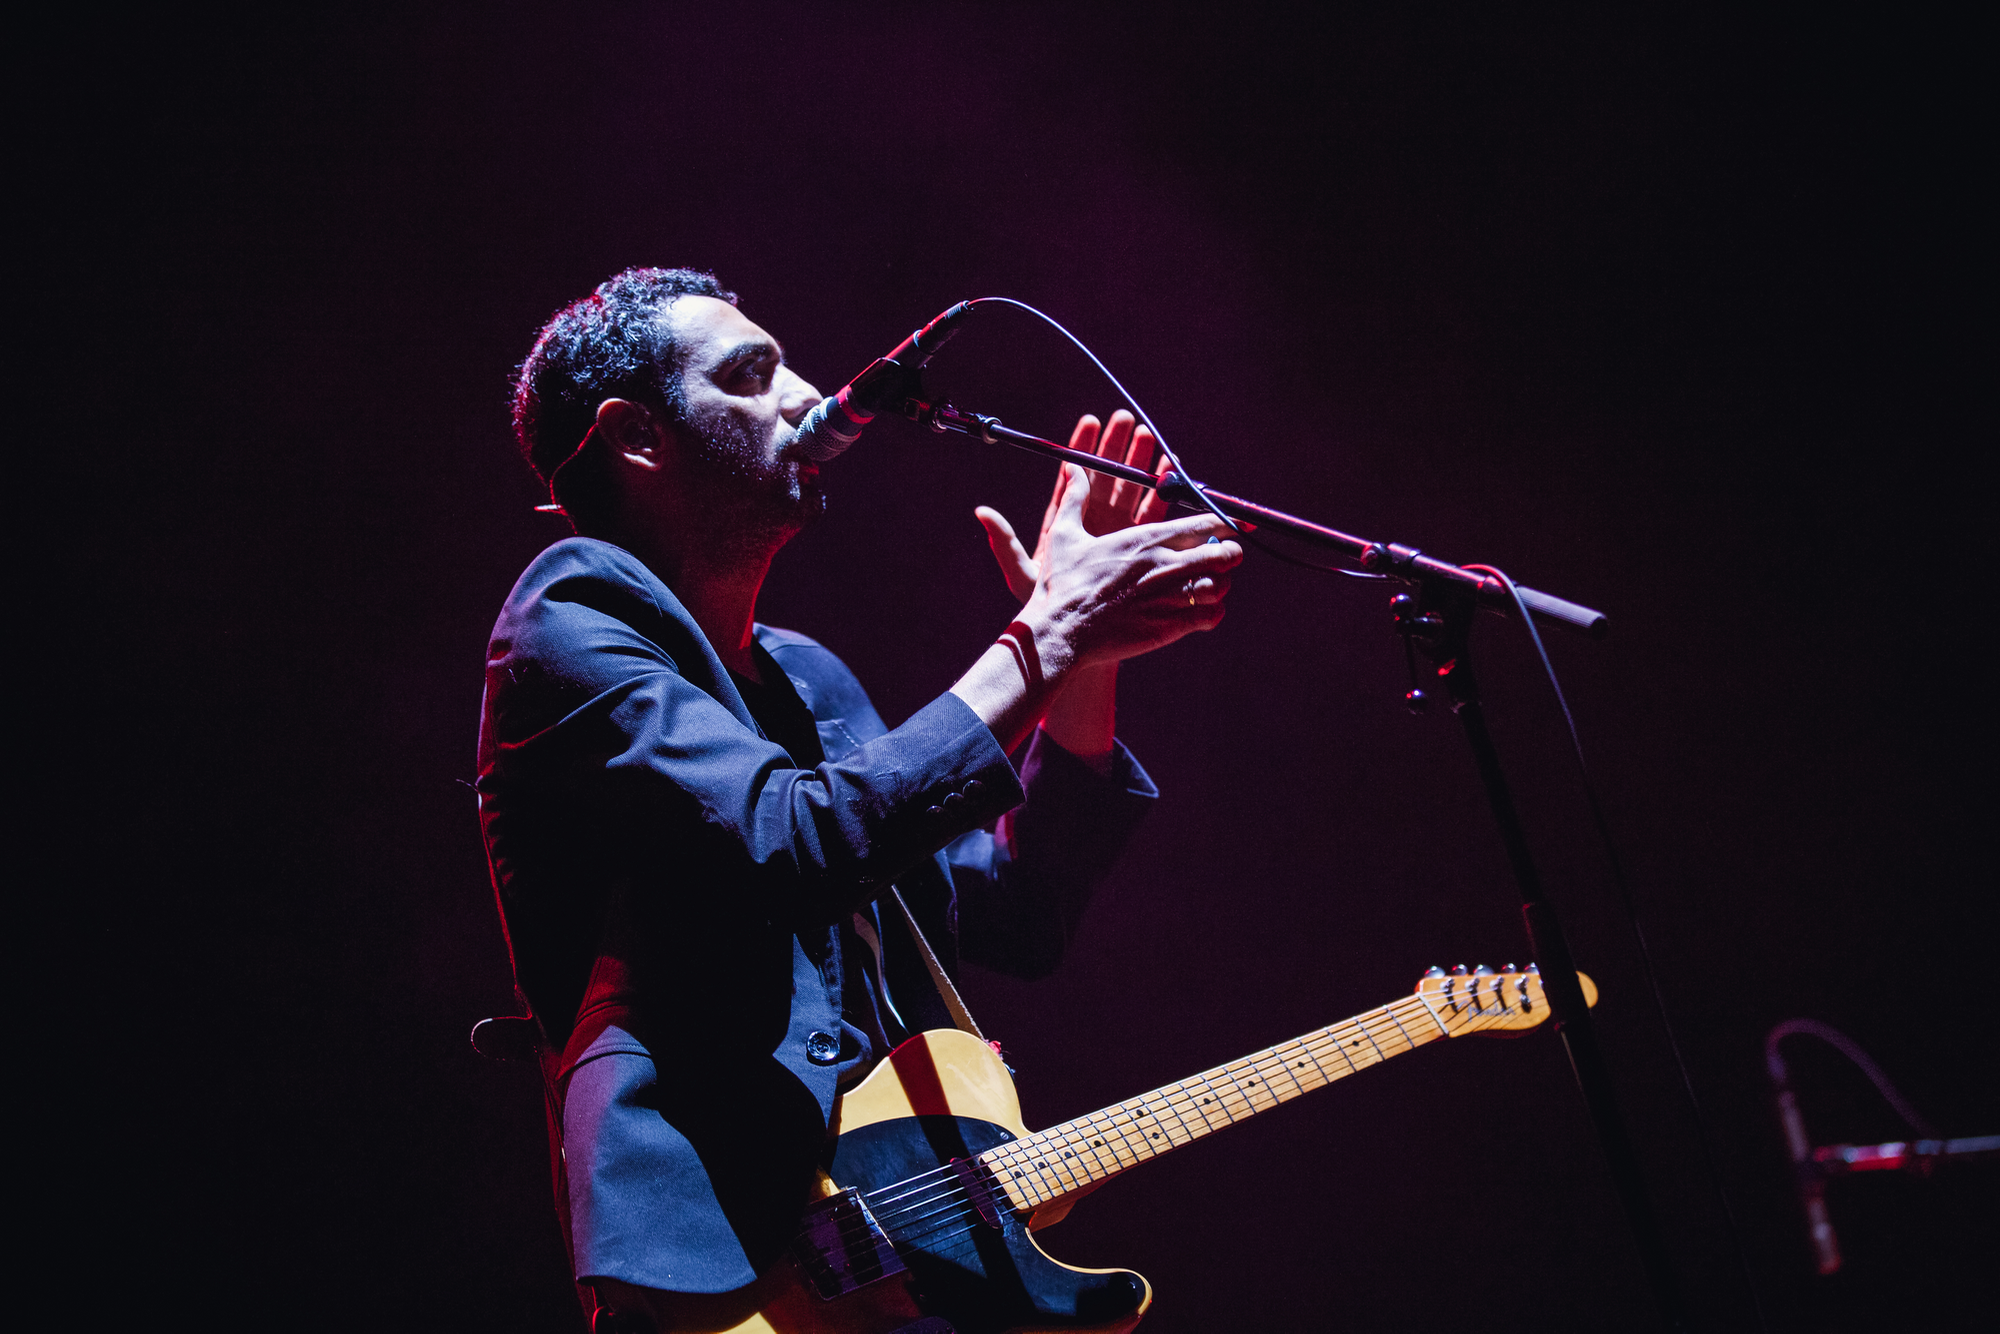 dudu tassa cat miller 17 of 146 Live Review: Radiohead Returns to North America and Kicks Off Tour in Miami (3/30)